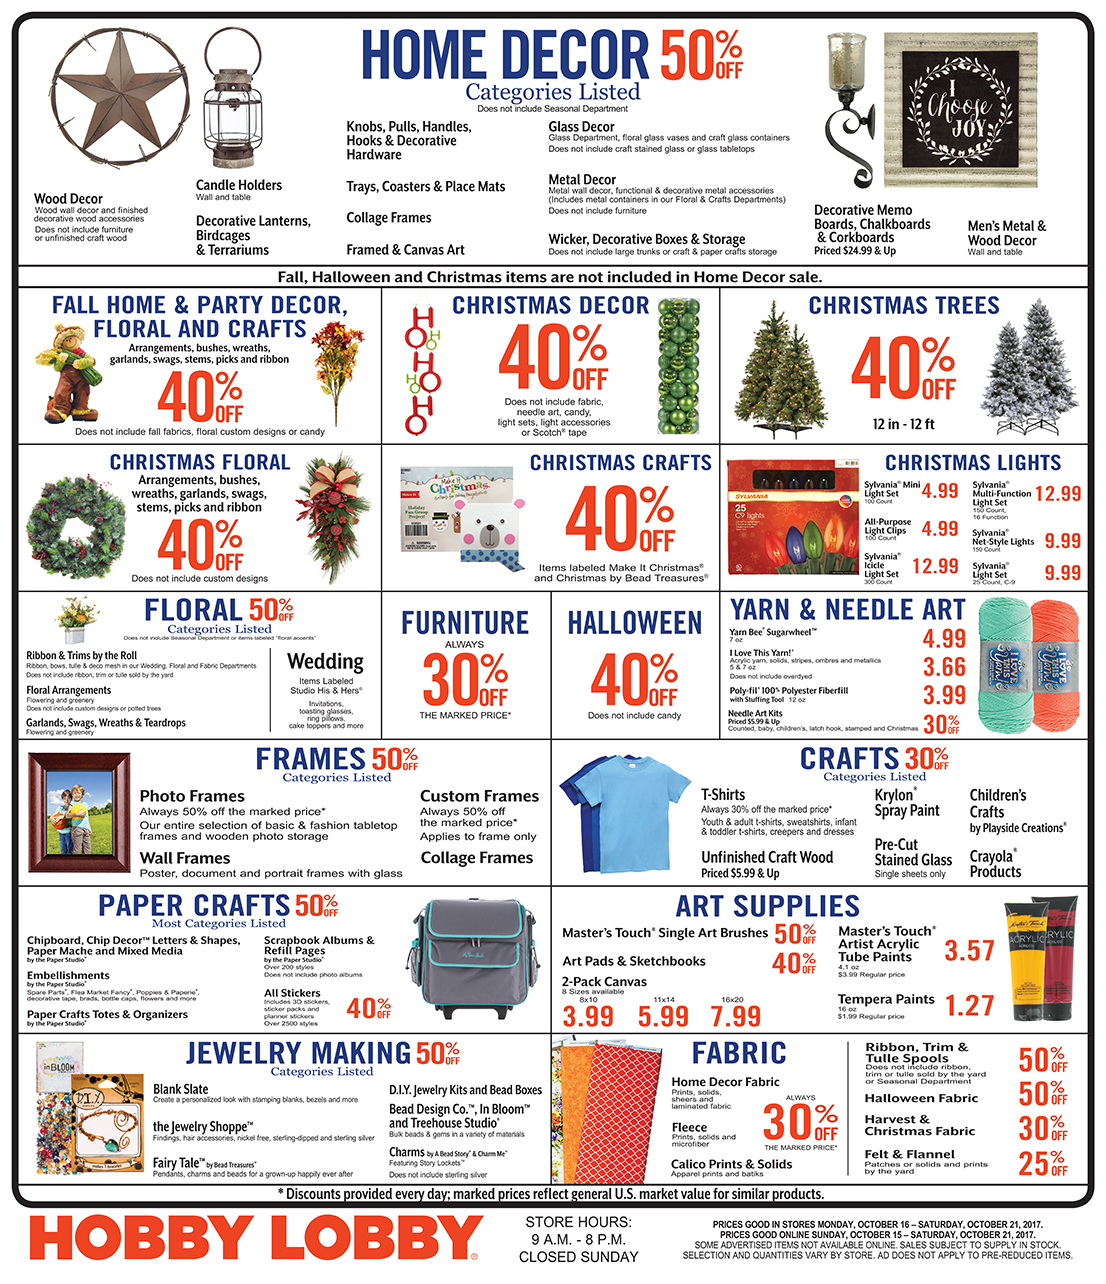 Does hobby lobby take competitor coupons